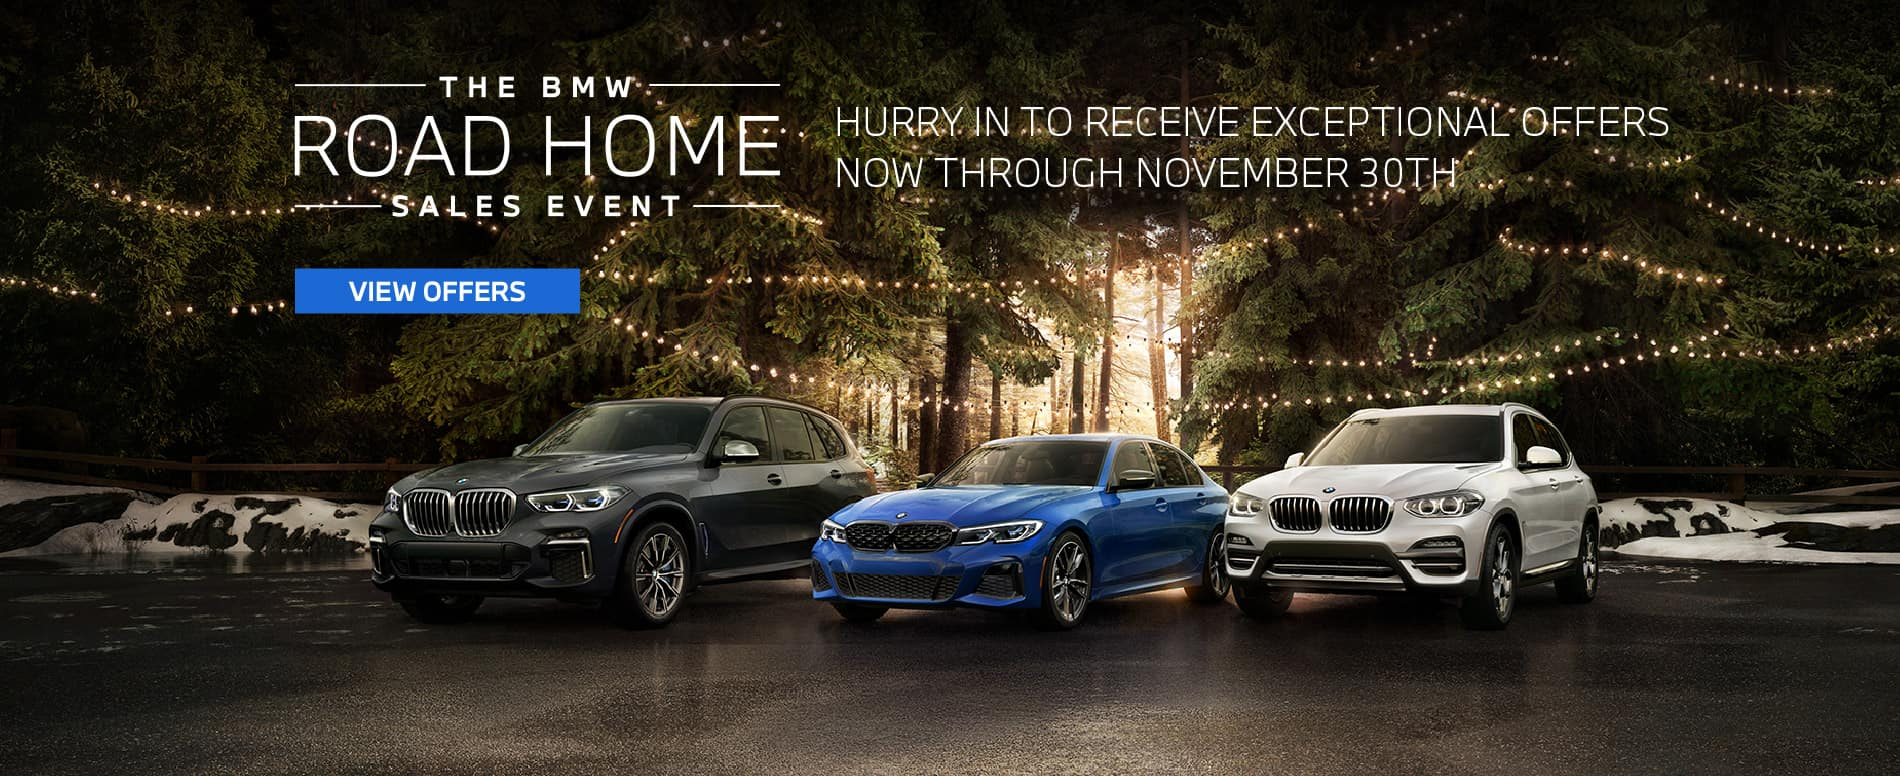 The Autobahn BMW Road Home Sales Event | Now through December 31st